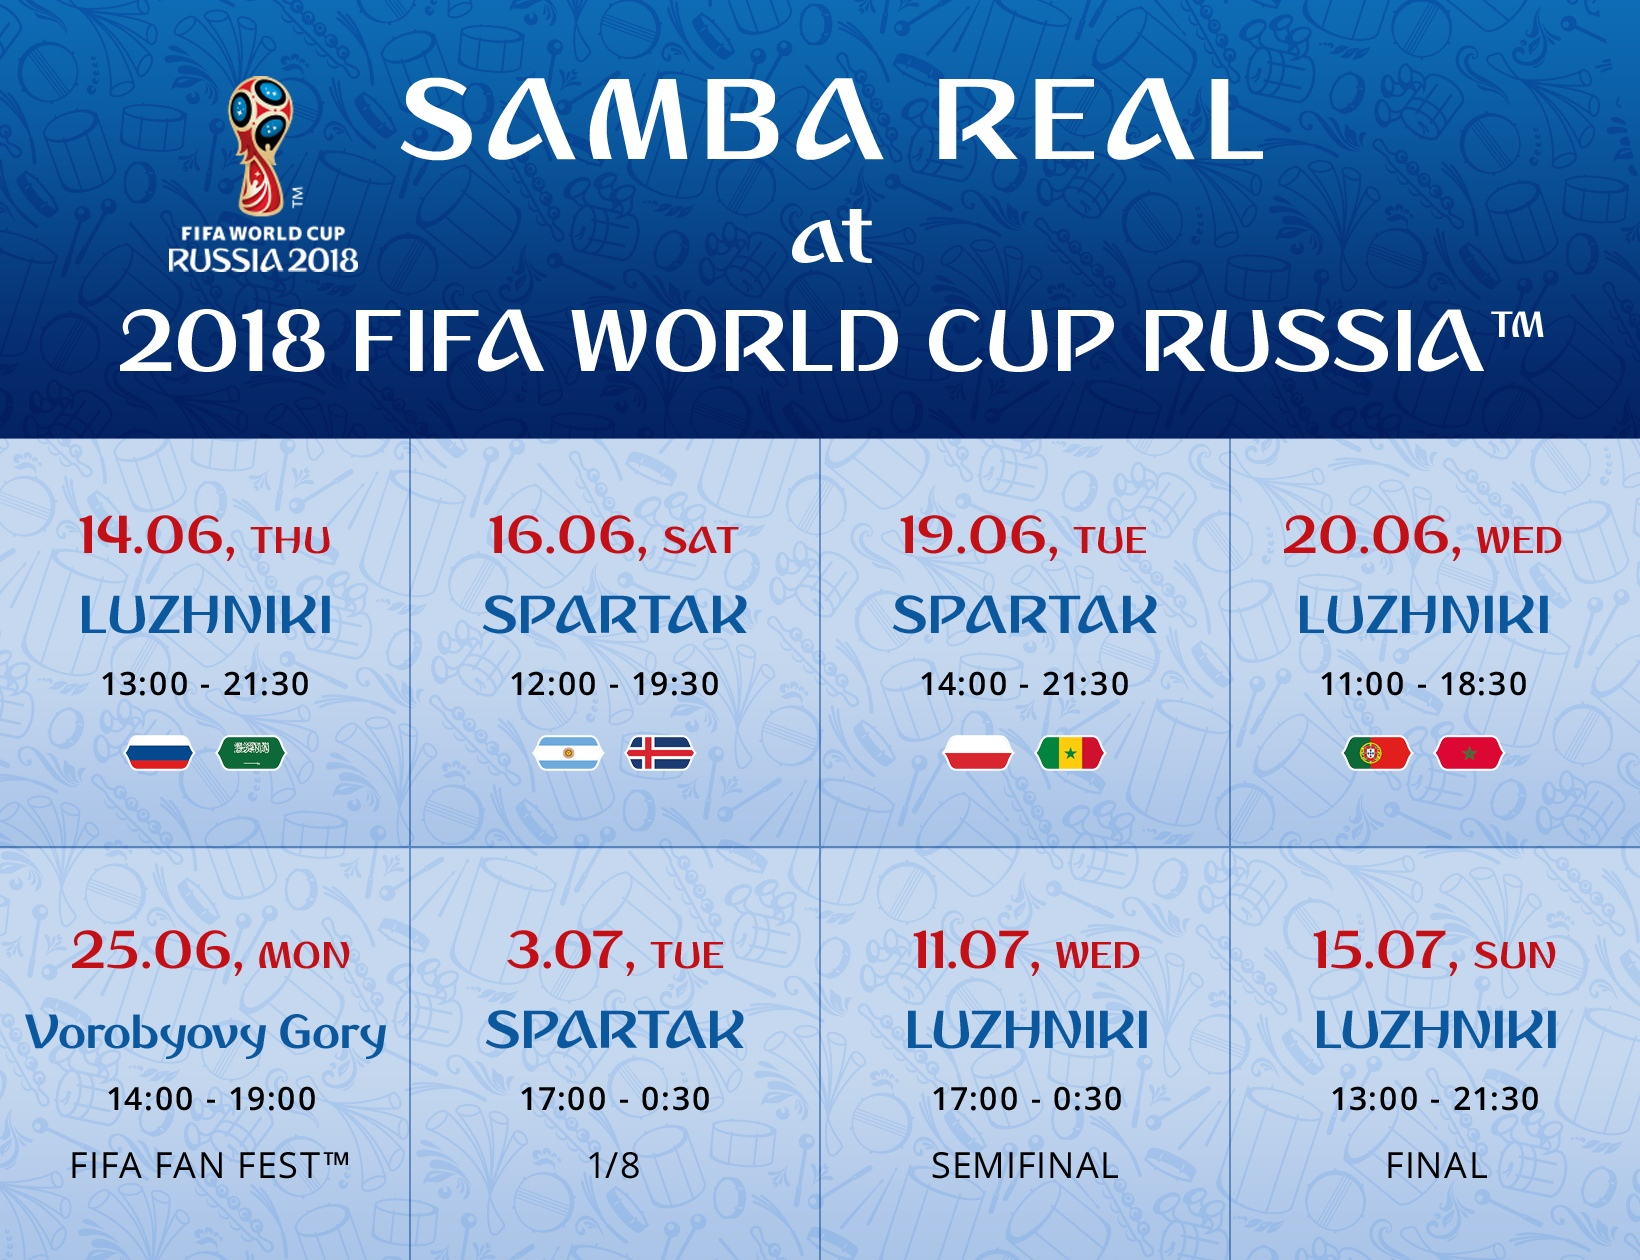 Samba Real at FIFA World Cup 2018